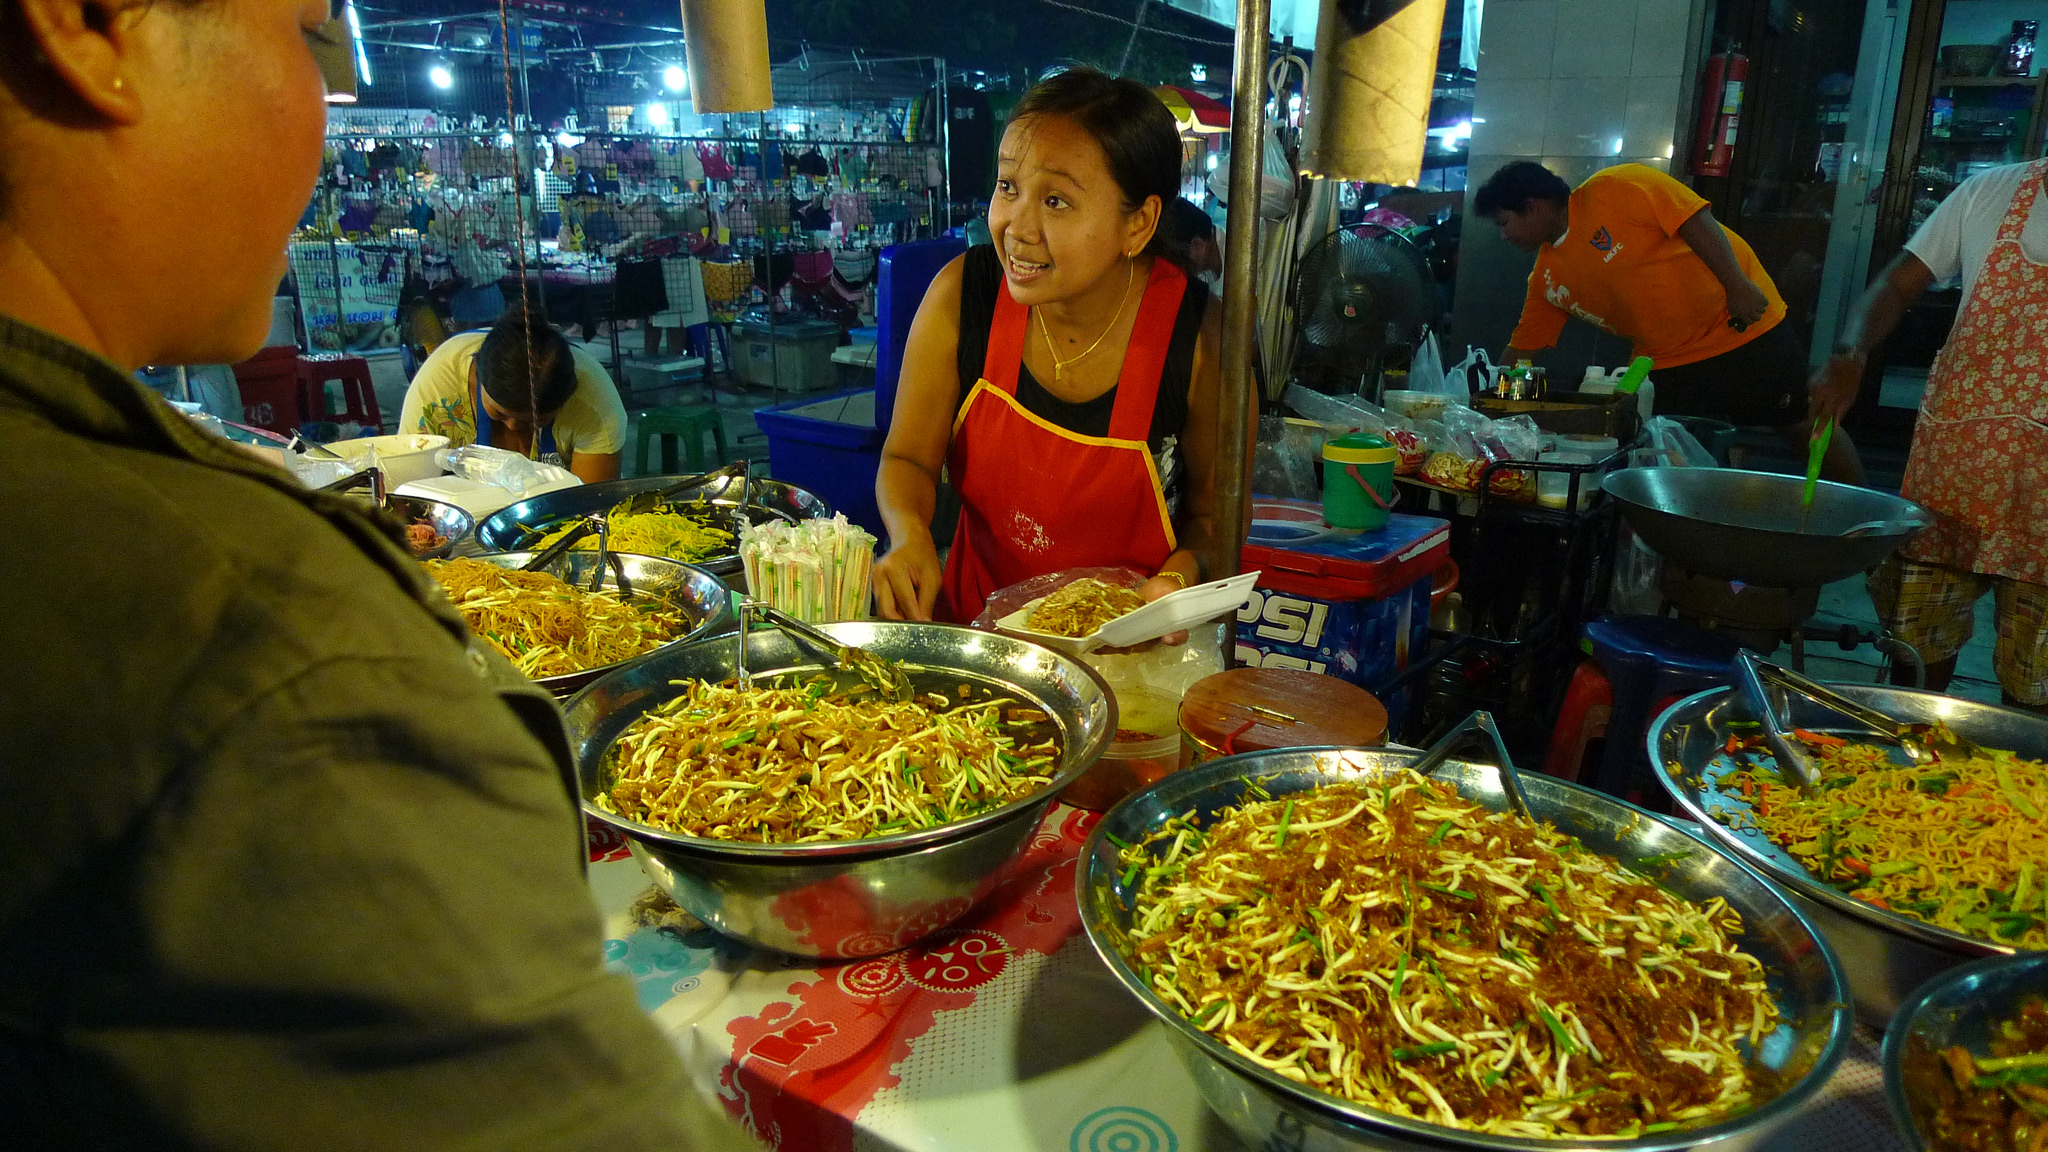 Stretch of noodles at night market.